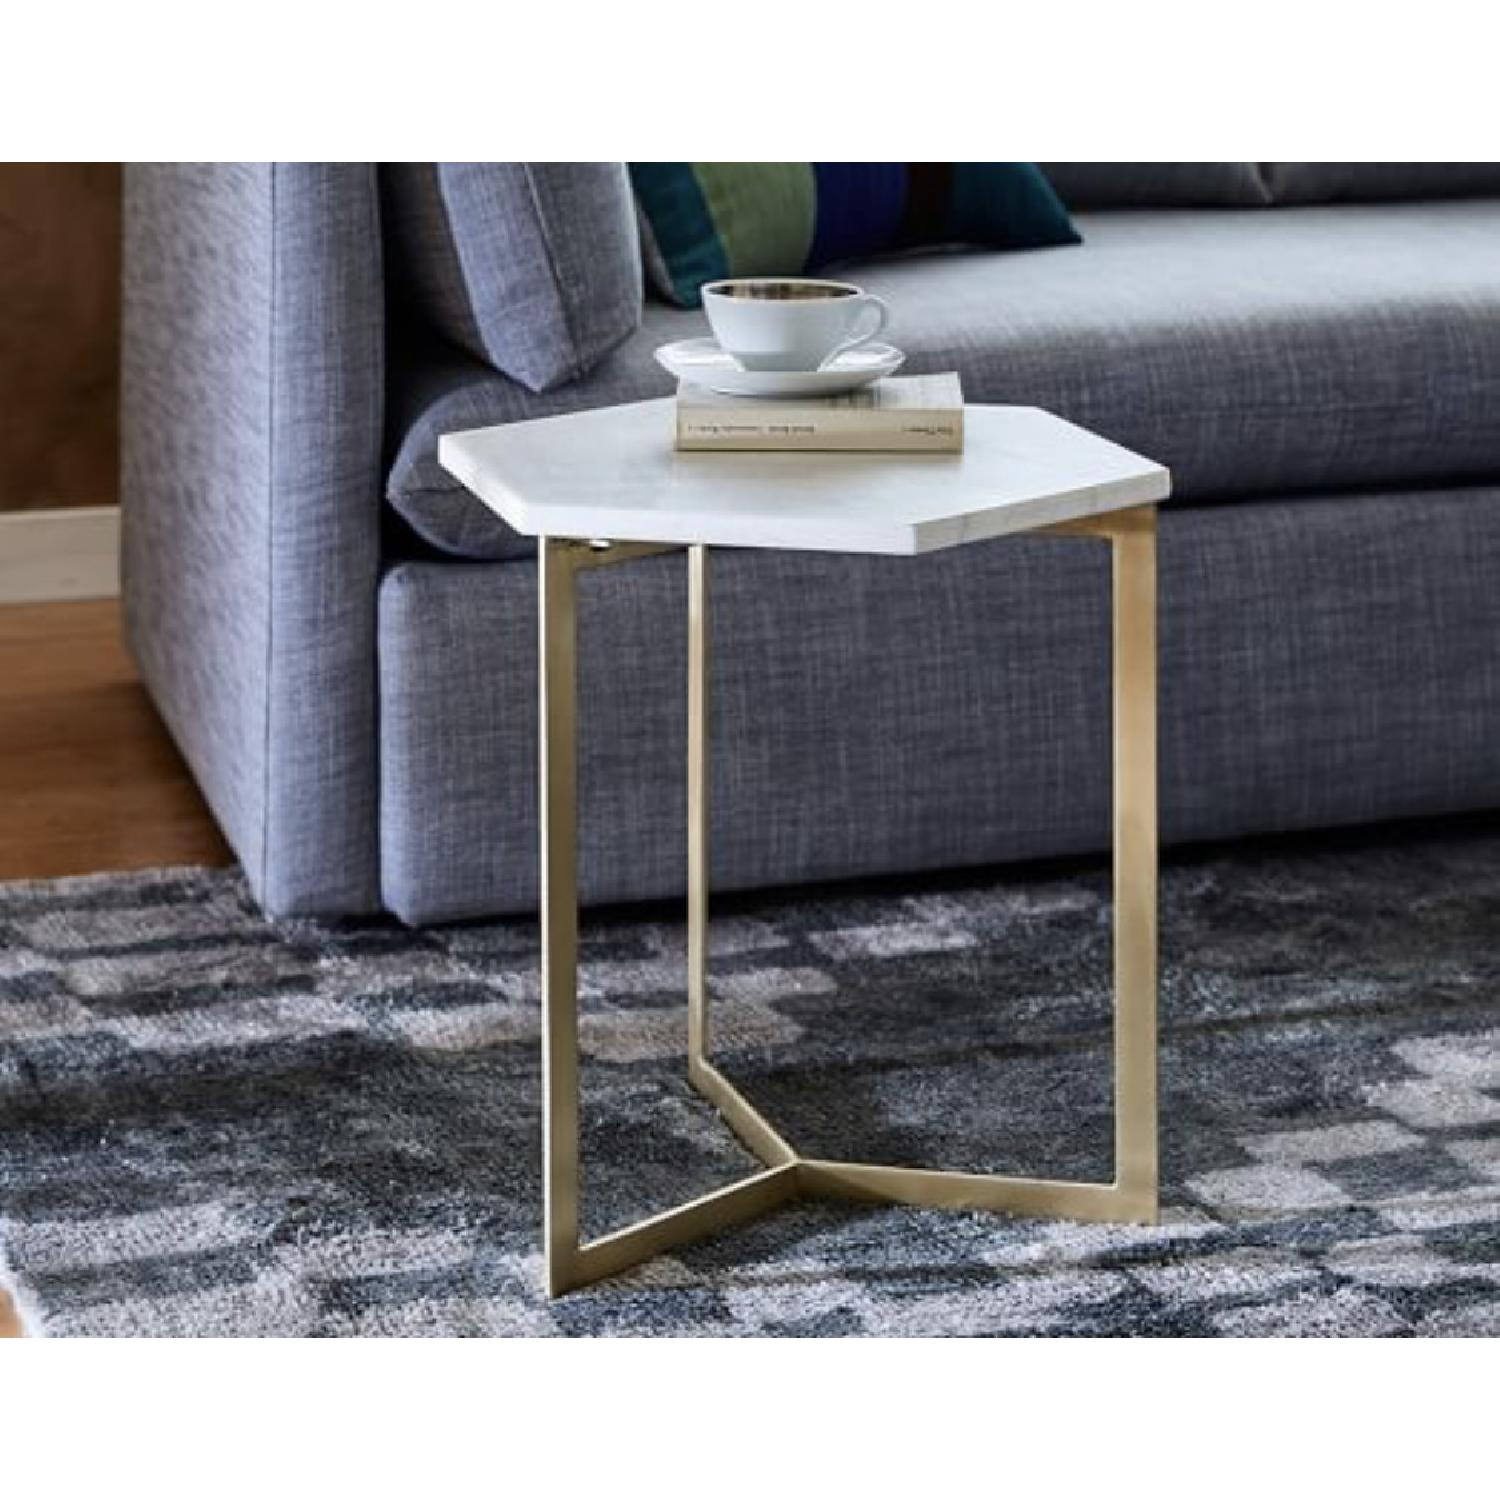 West Elm Hex Tables in Marble Antique Brass - image-2